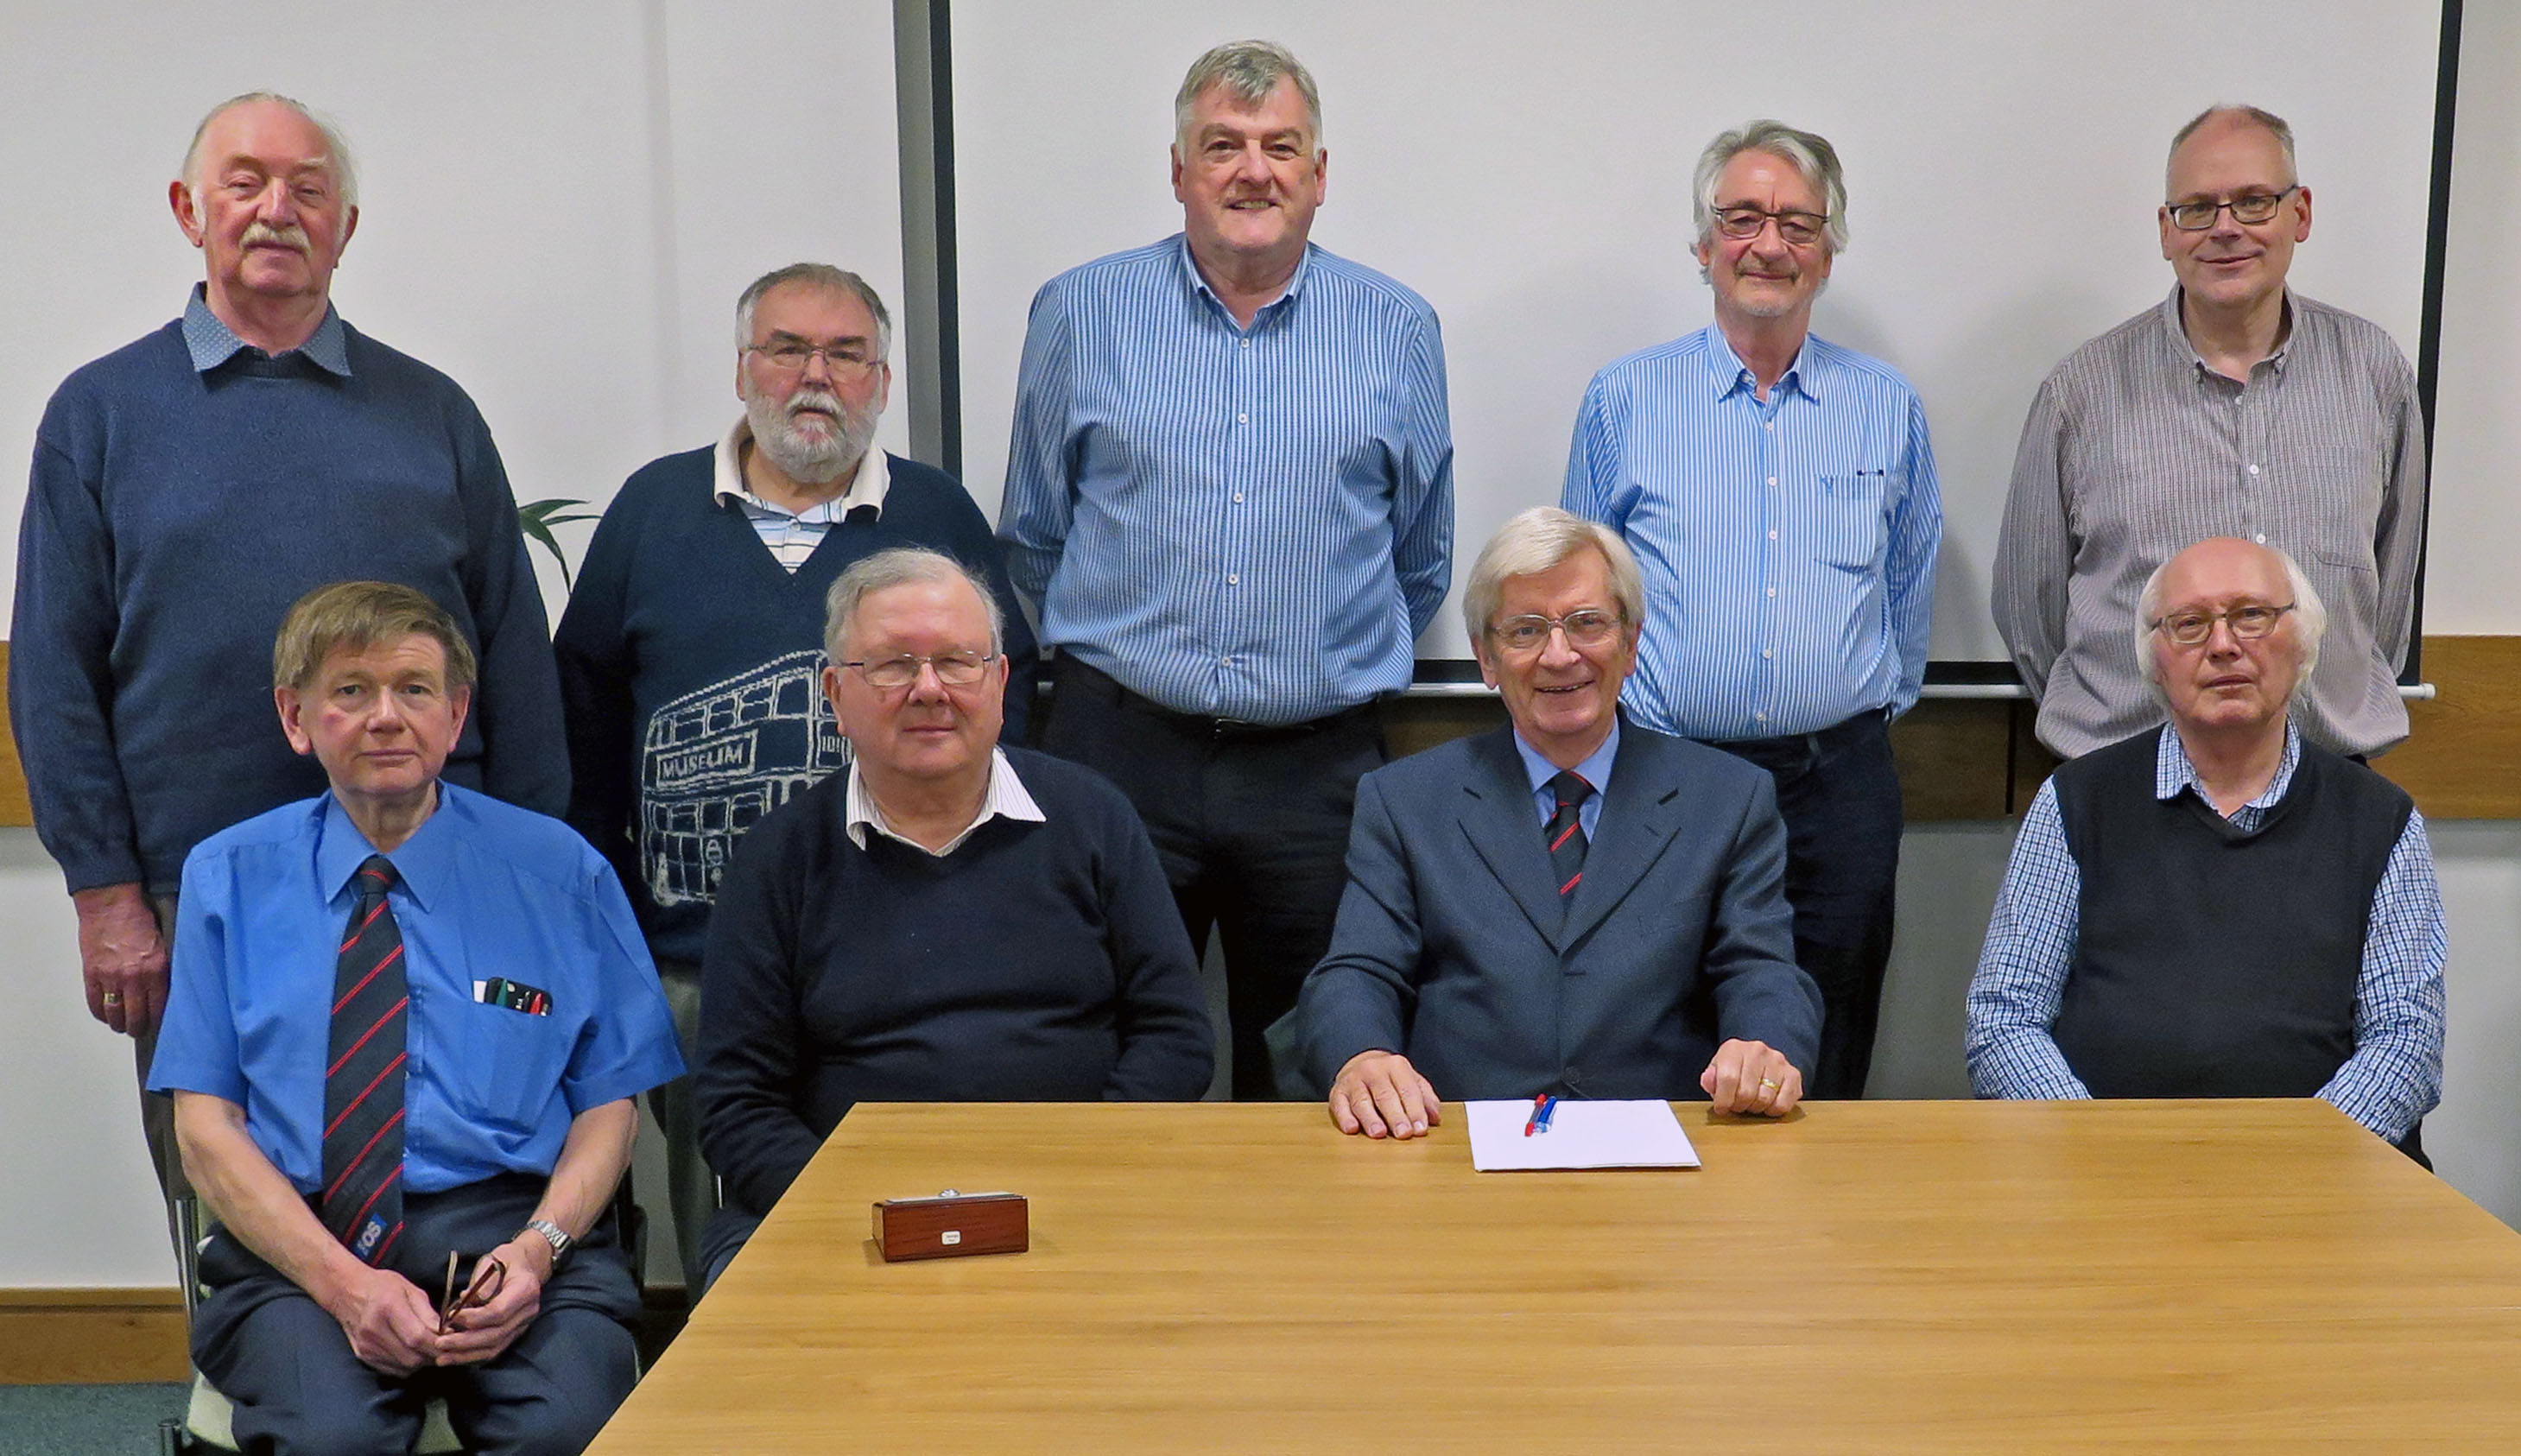 Midland Branch Committee - March 2018